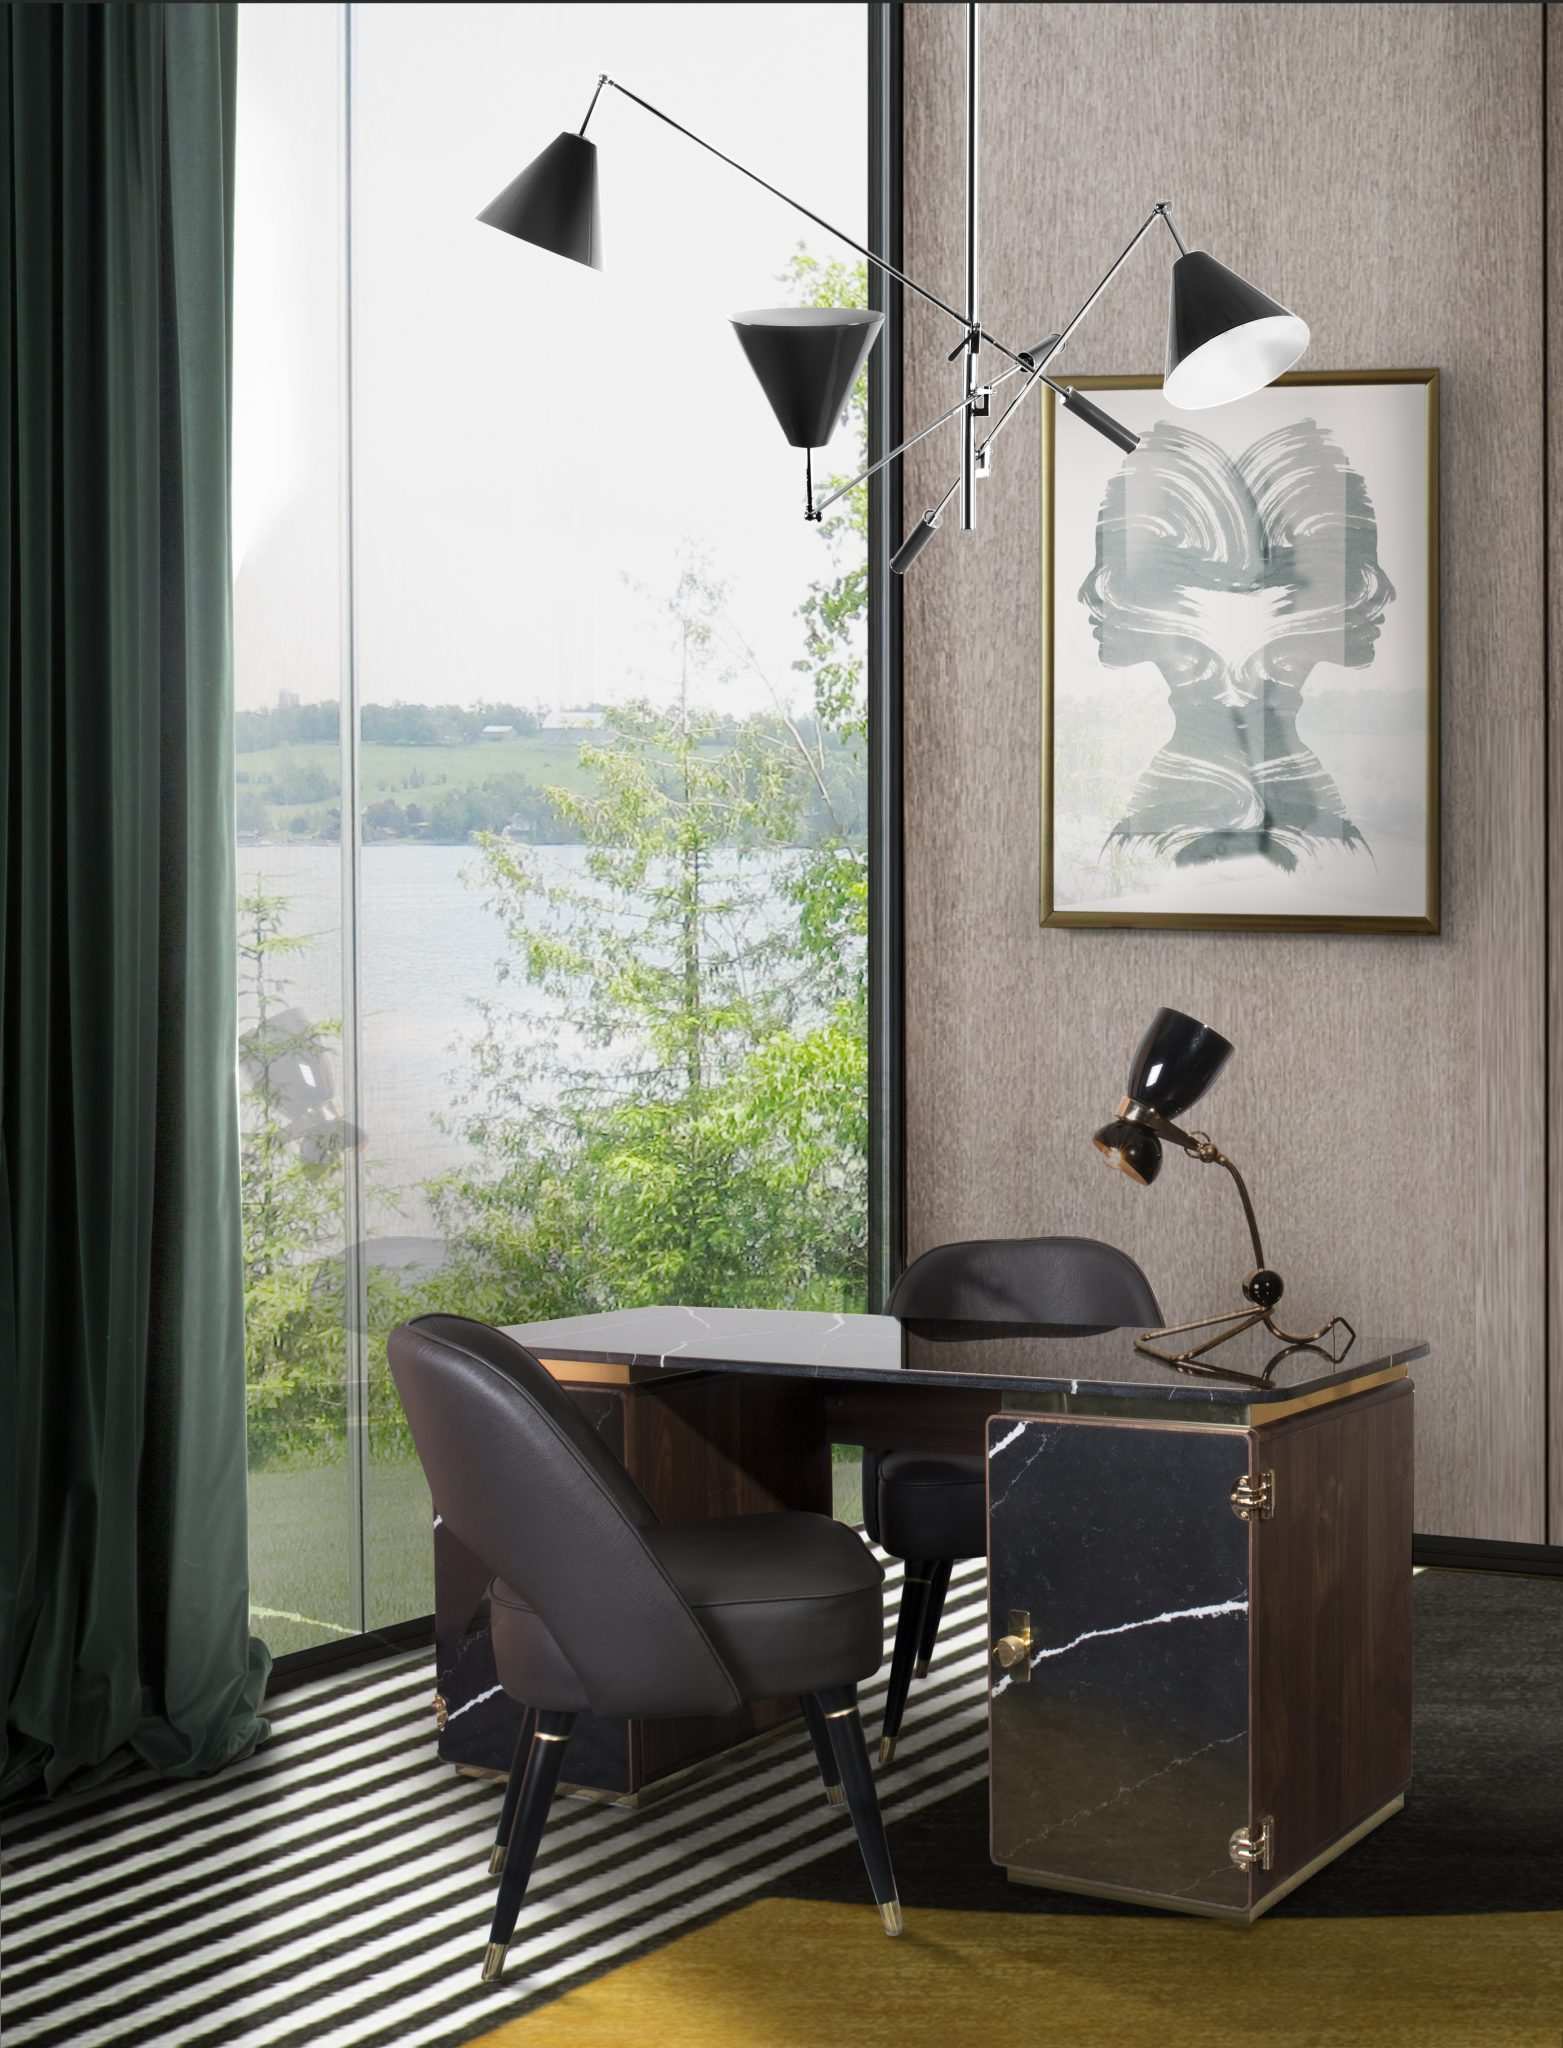 HIGHLIGHTING MID-CENTURY MODERN VIBES FOR YOUR HOME OFFICE